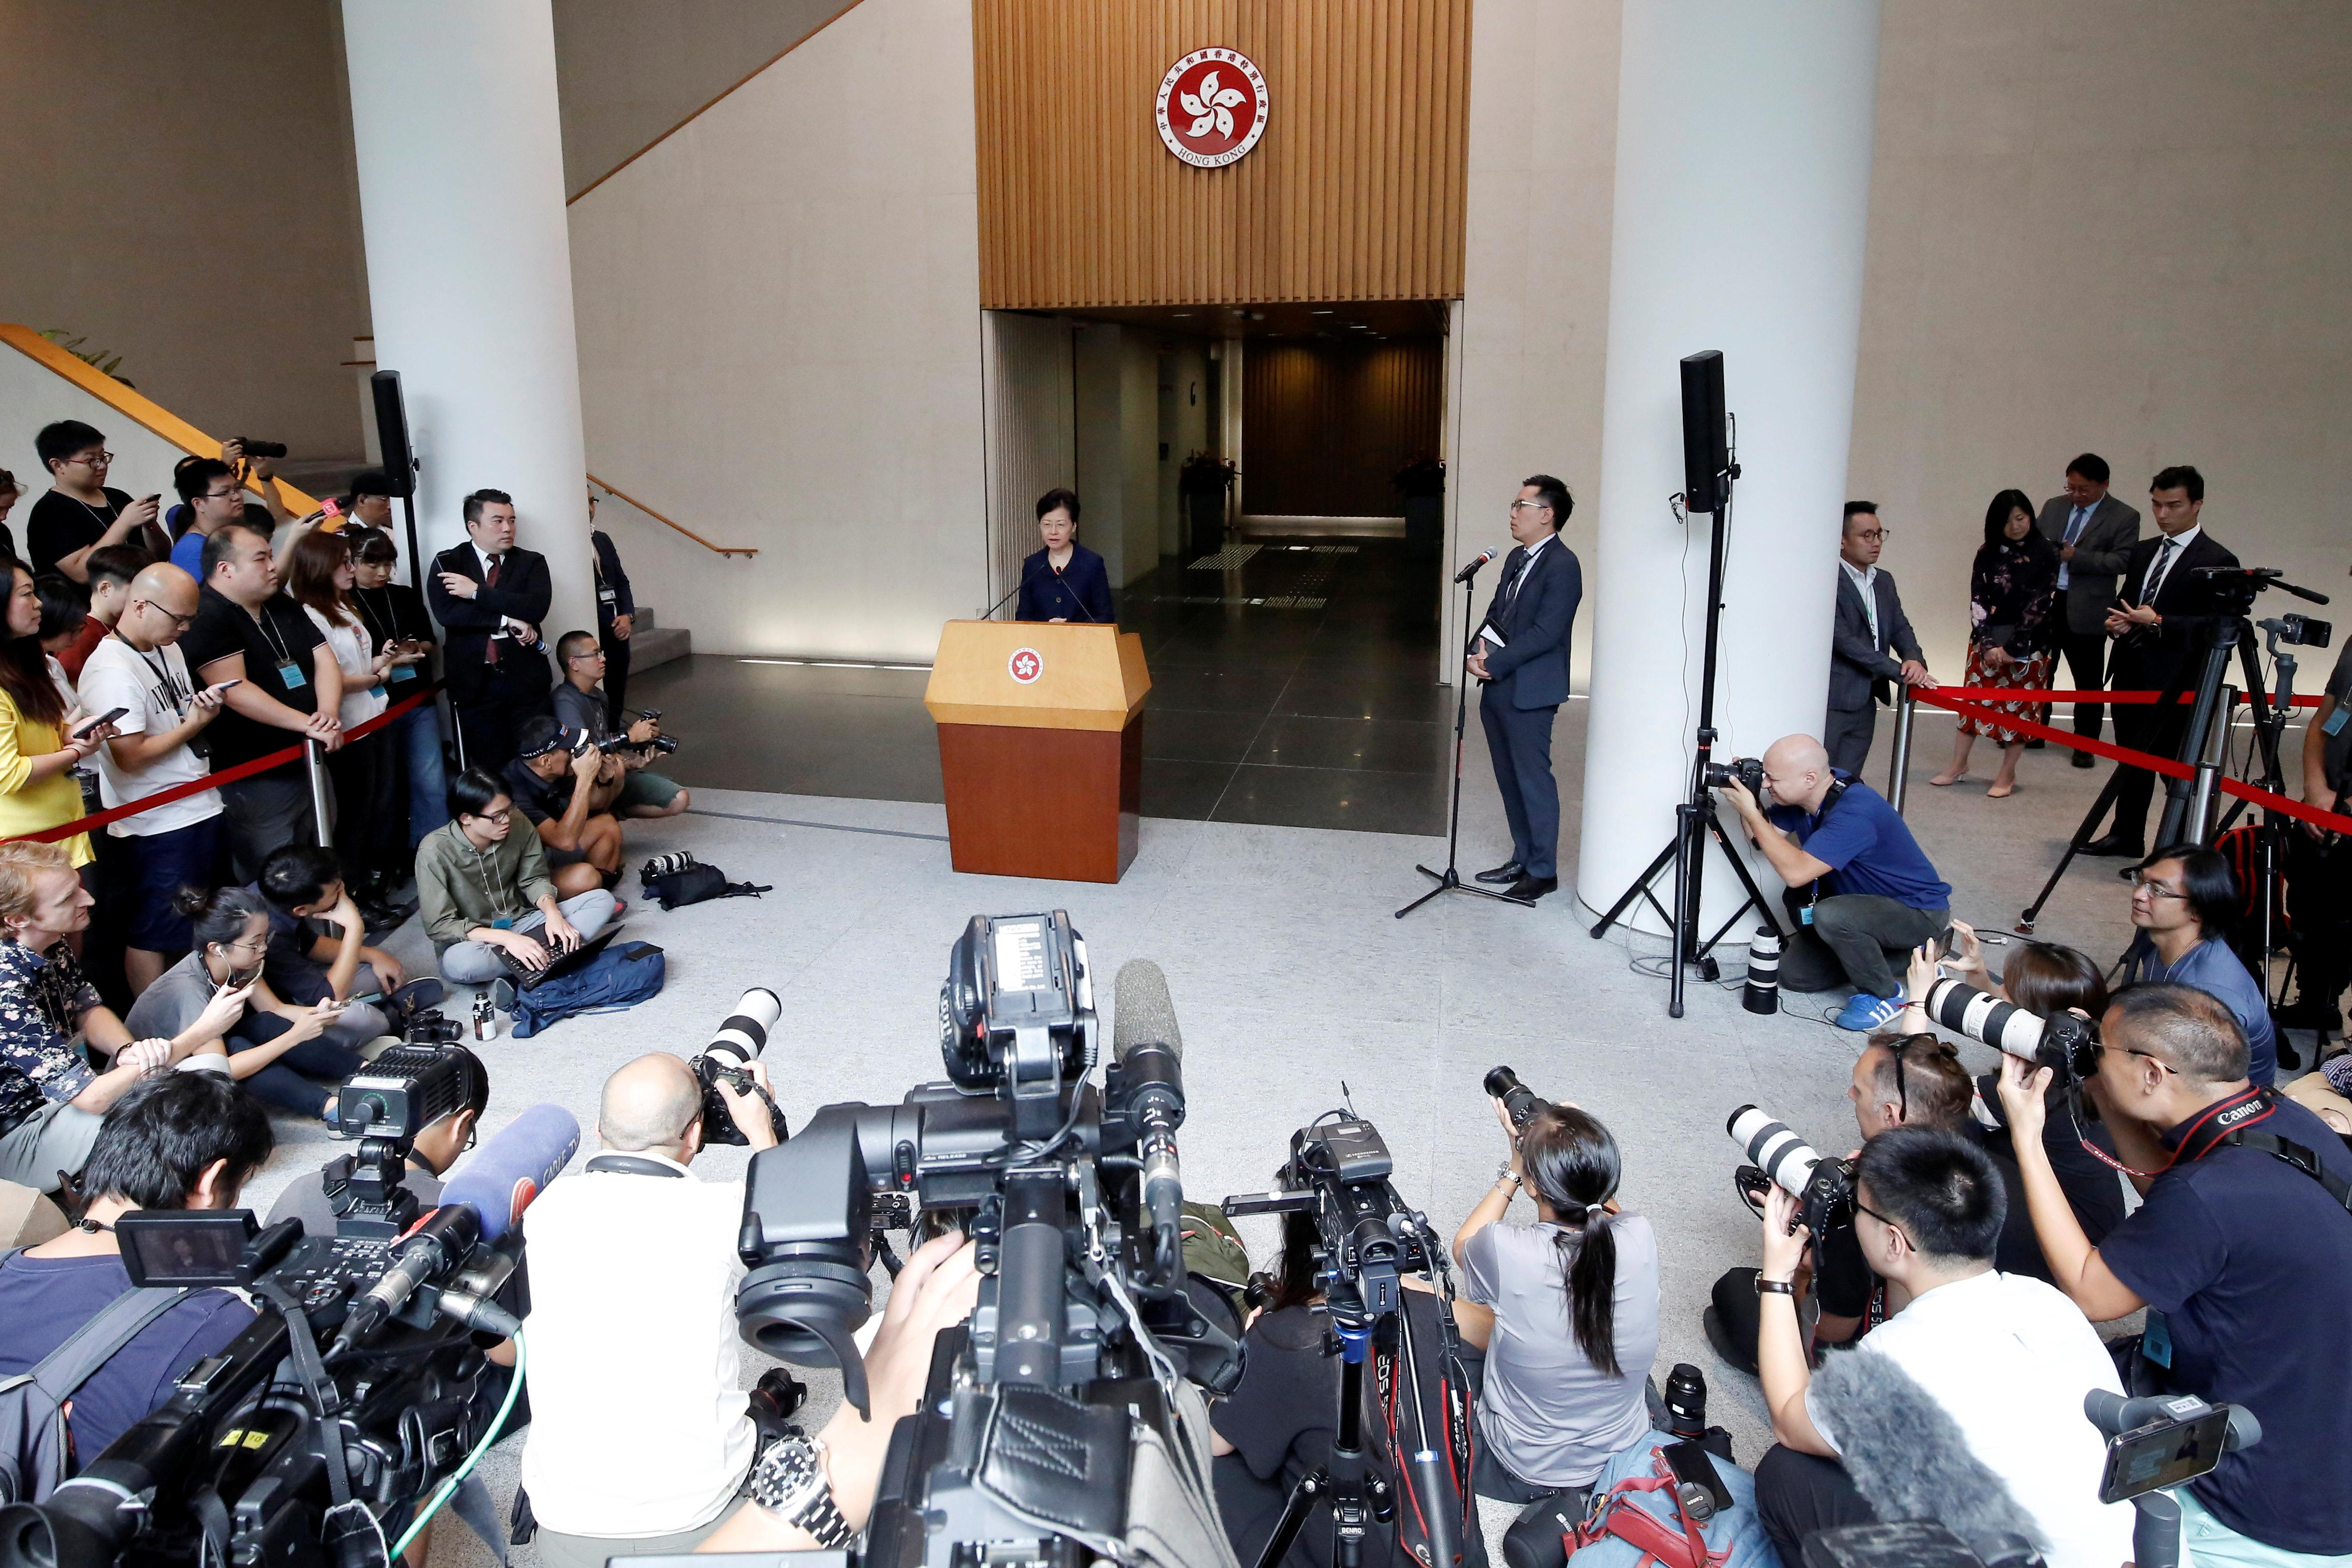 Hong Kong leader sees 'way out' of chaos after peaceful protest